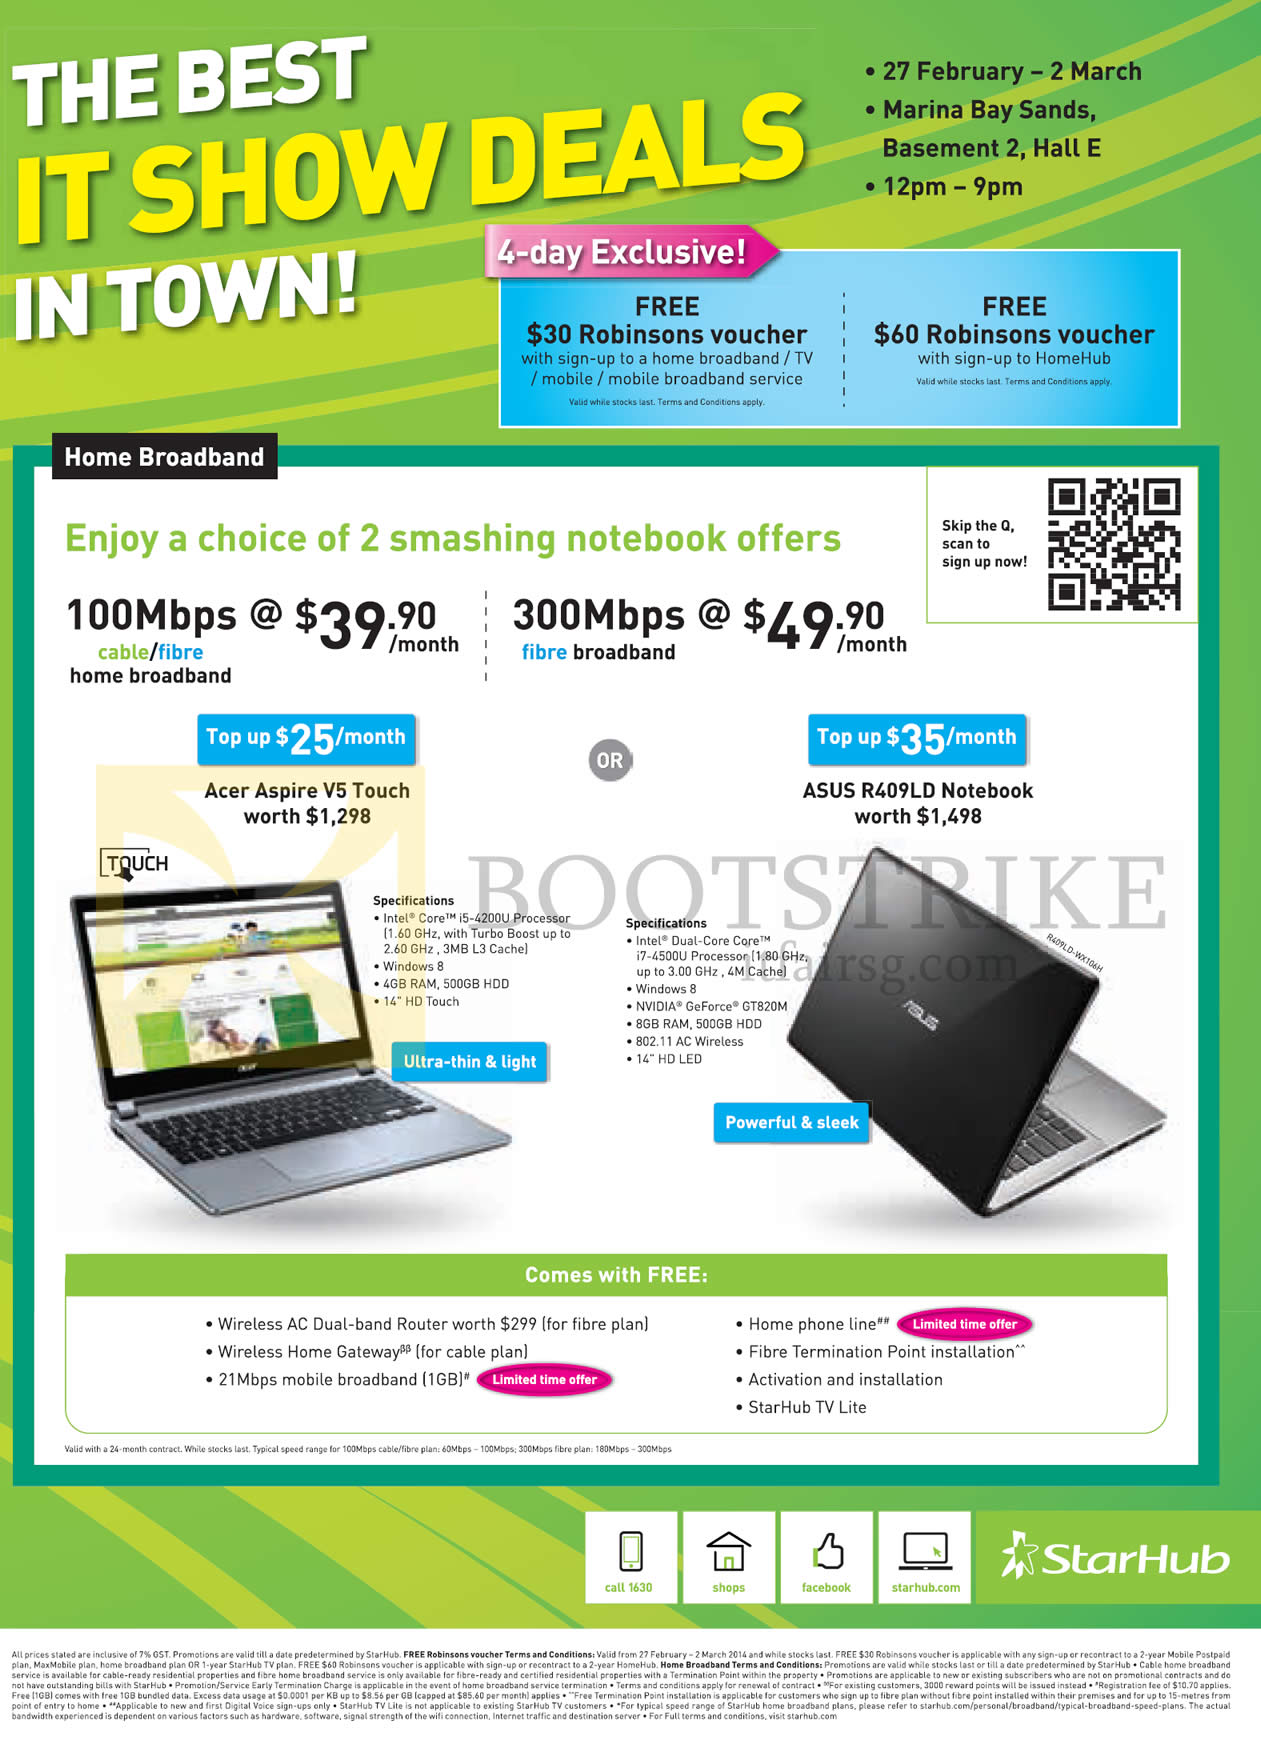 StarHub IT SHOW 2014 Broadband, Smartphones, Tablets, Cable TV